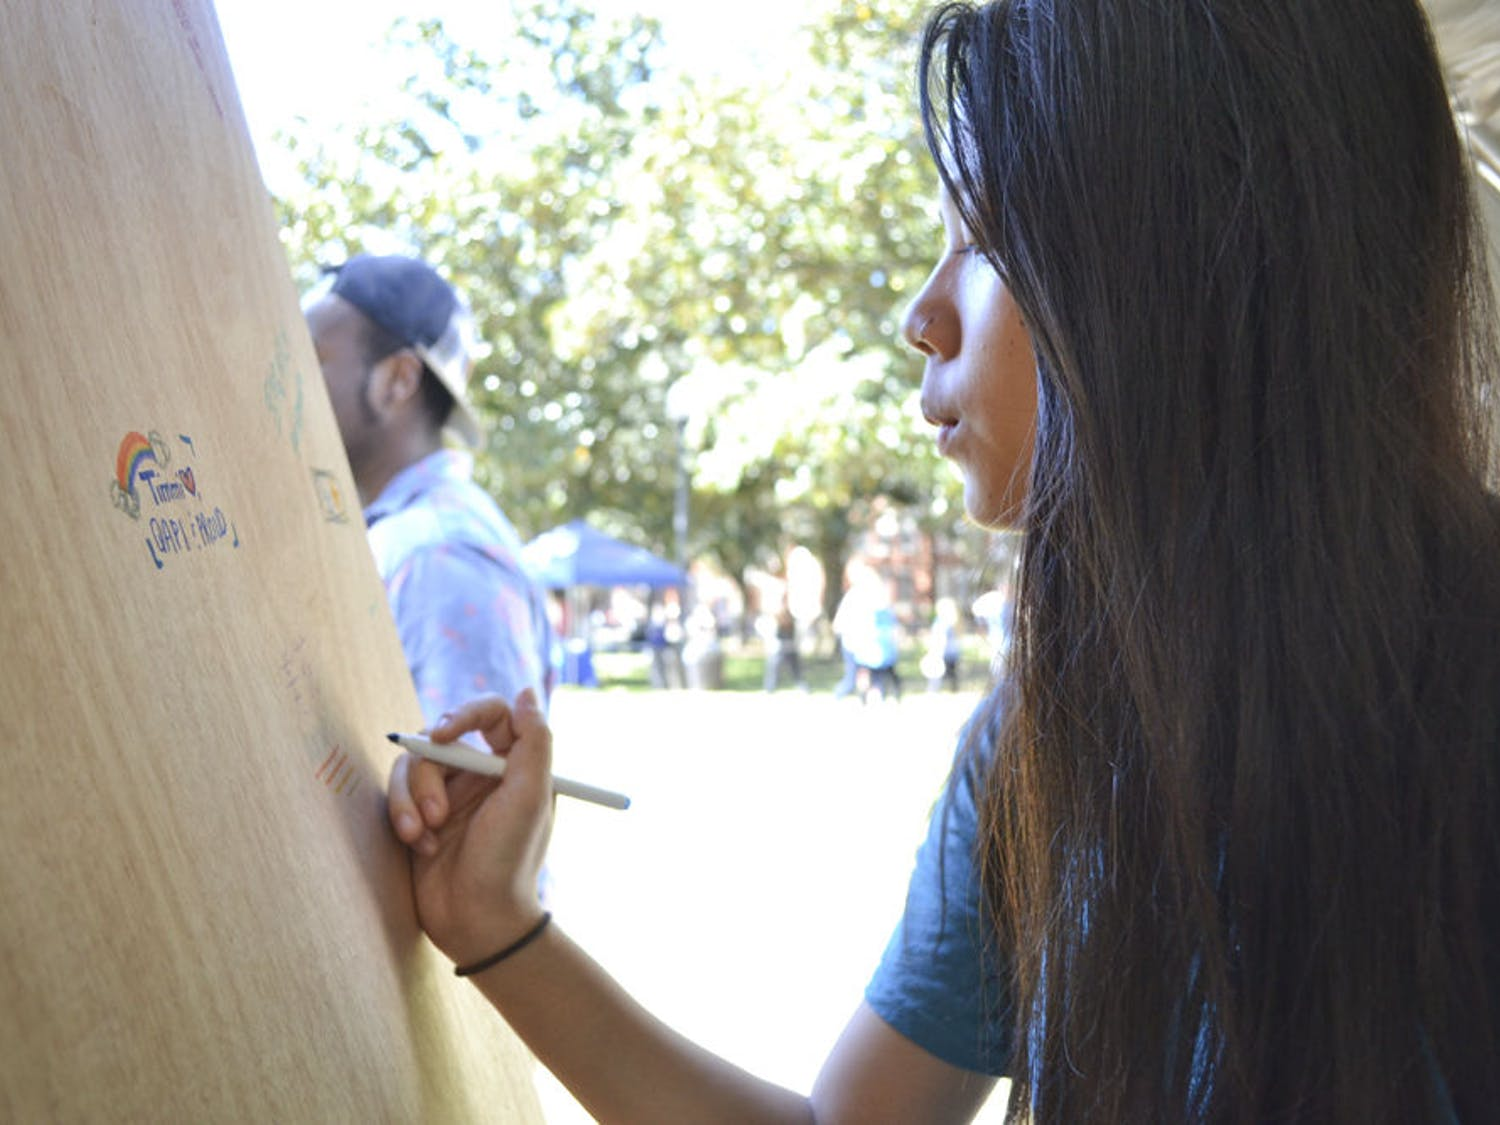 """Natalie Heller, a 20-year-old finance junior, writes her name on the door at National Coming Out Day on the Plaza of the Americas on Oct. 12, 2015, to support coming out. Heller said writing her name on the door meant not being afraid. """"If someone were to walk by and see my name, I wouldn't care,"""" Heller said. """"The same time last year I wouldn't have been willing to."""""""